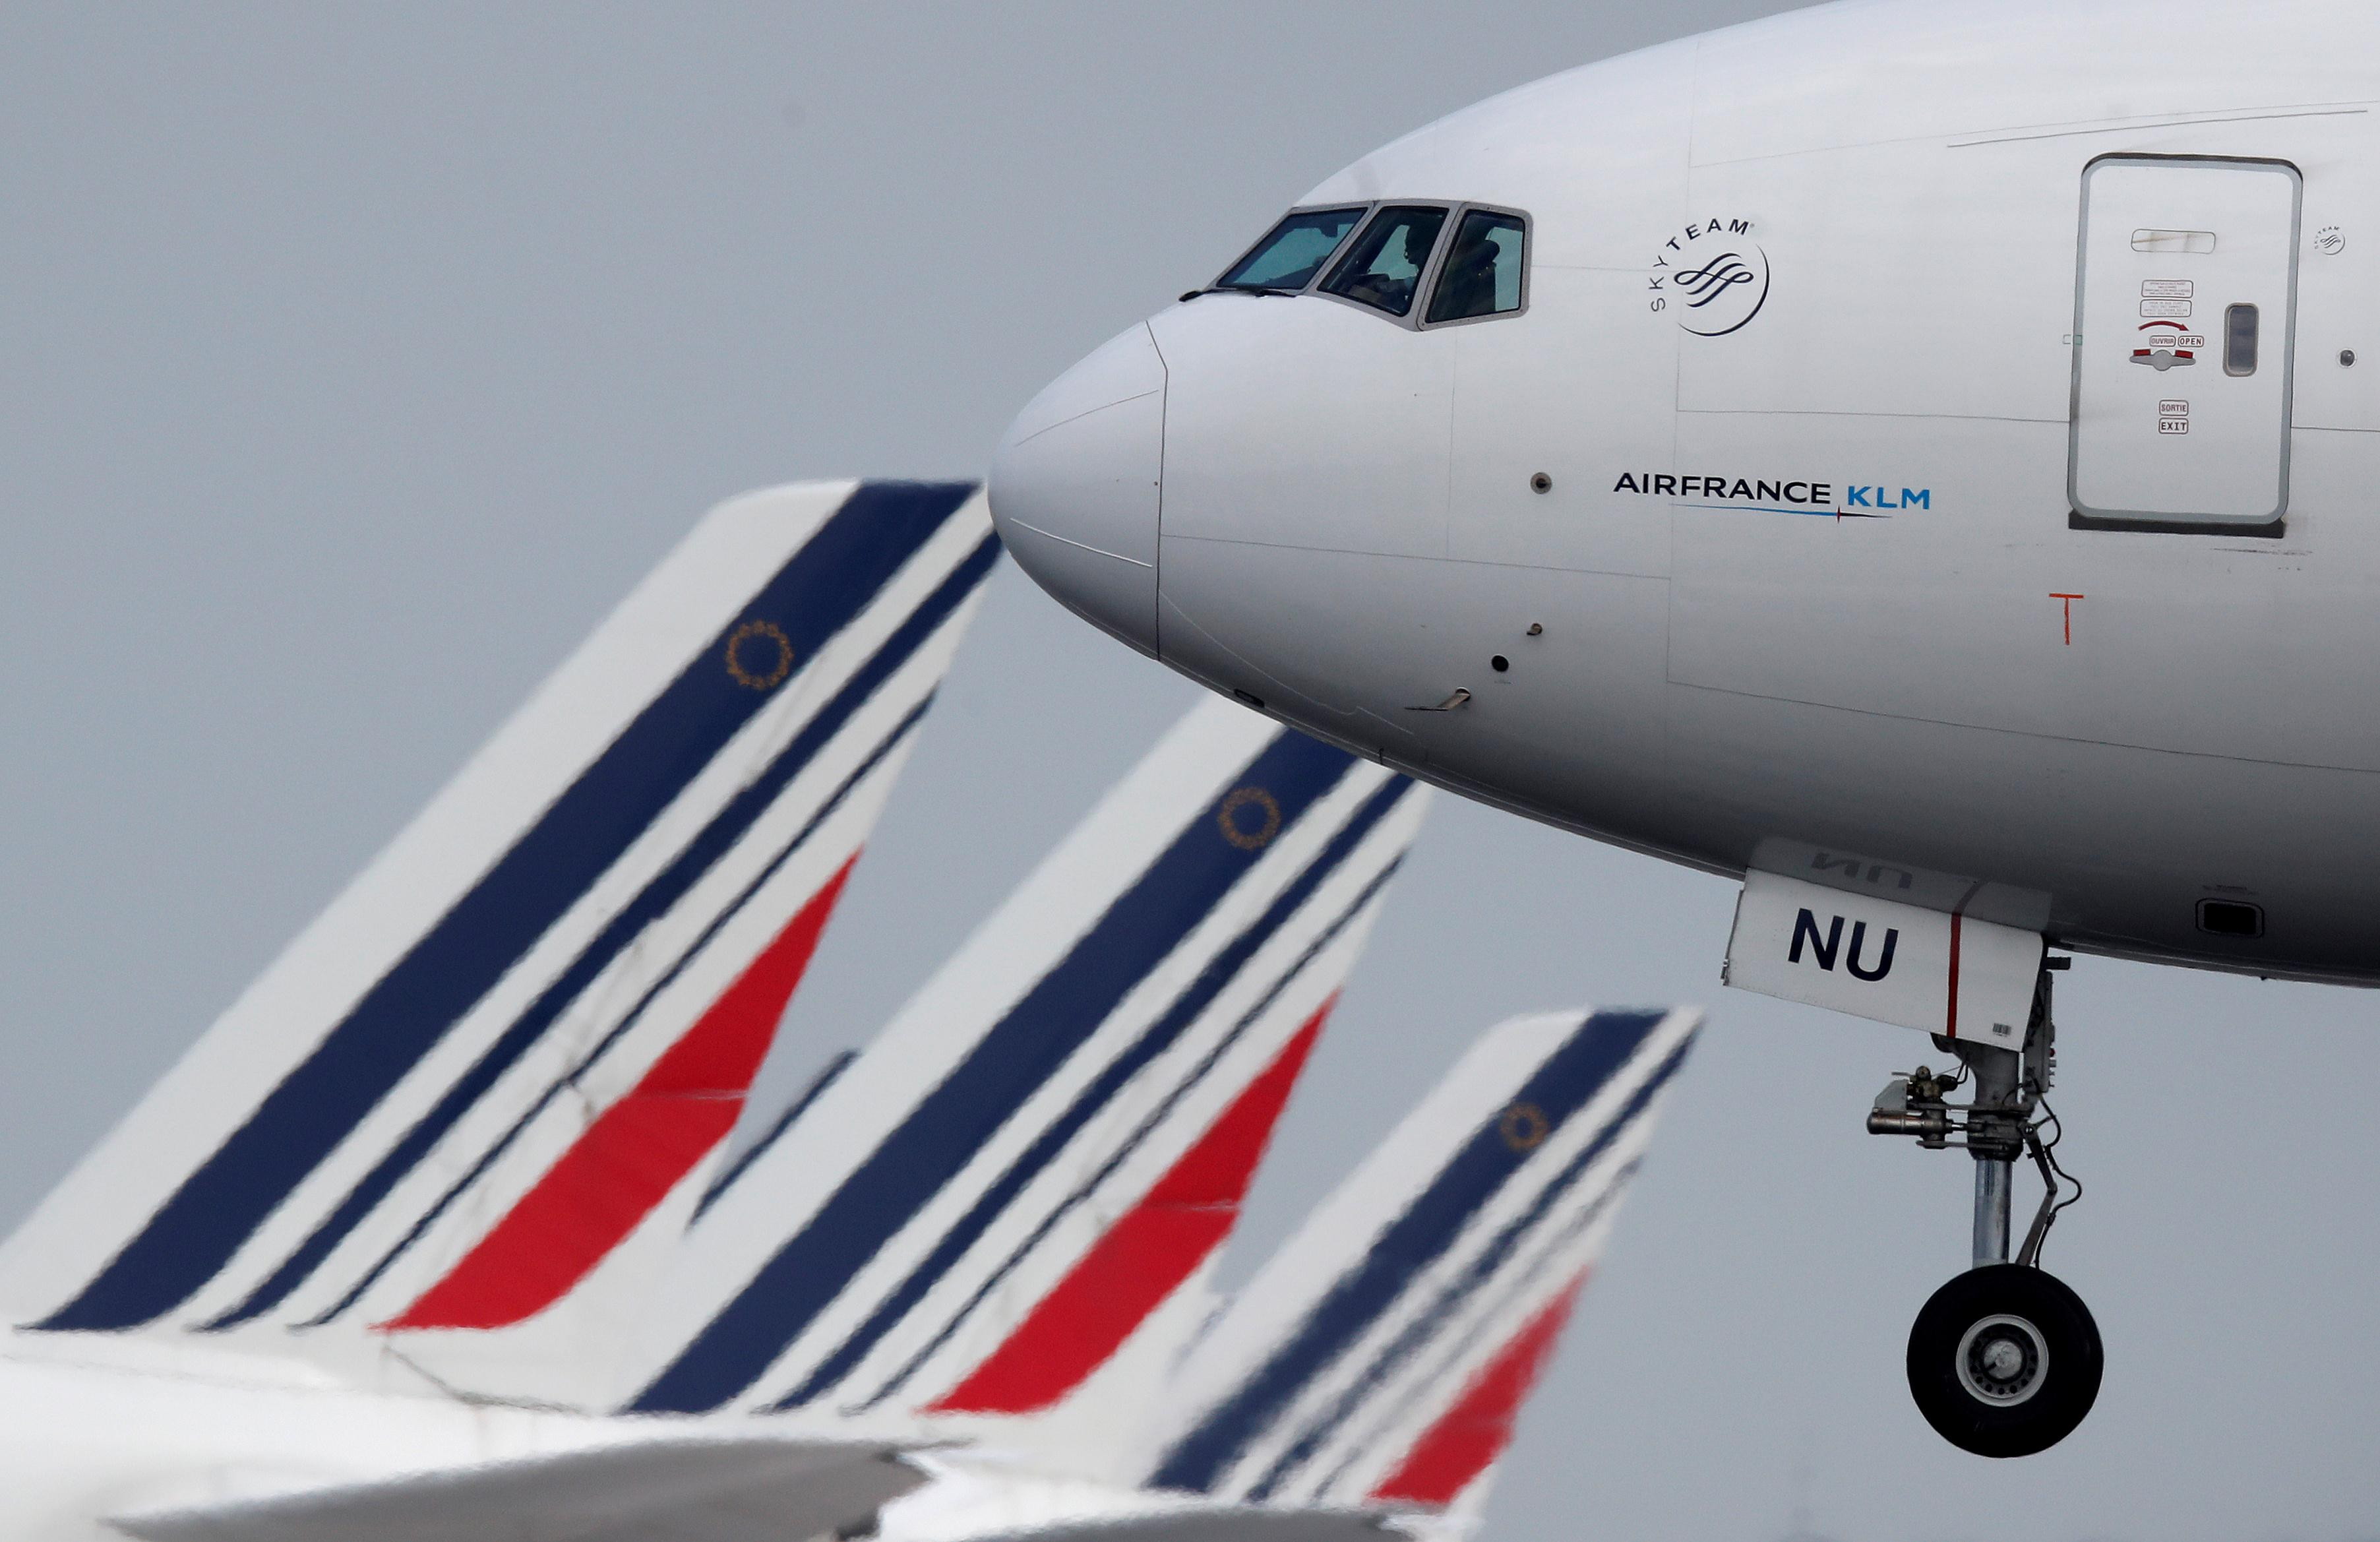 Air France KLM's July passenger numbers rise 1.8% year-on-year